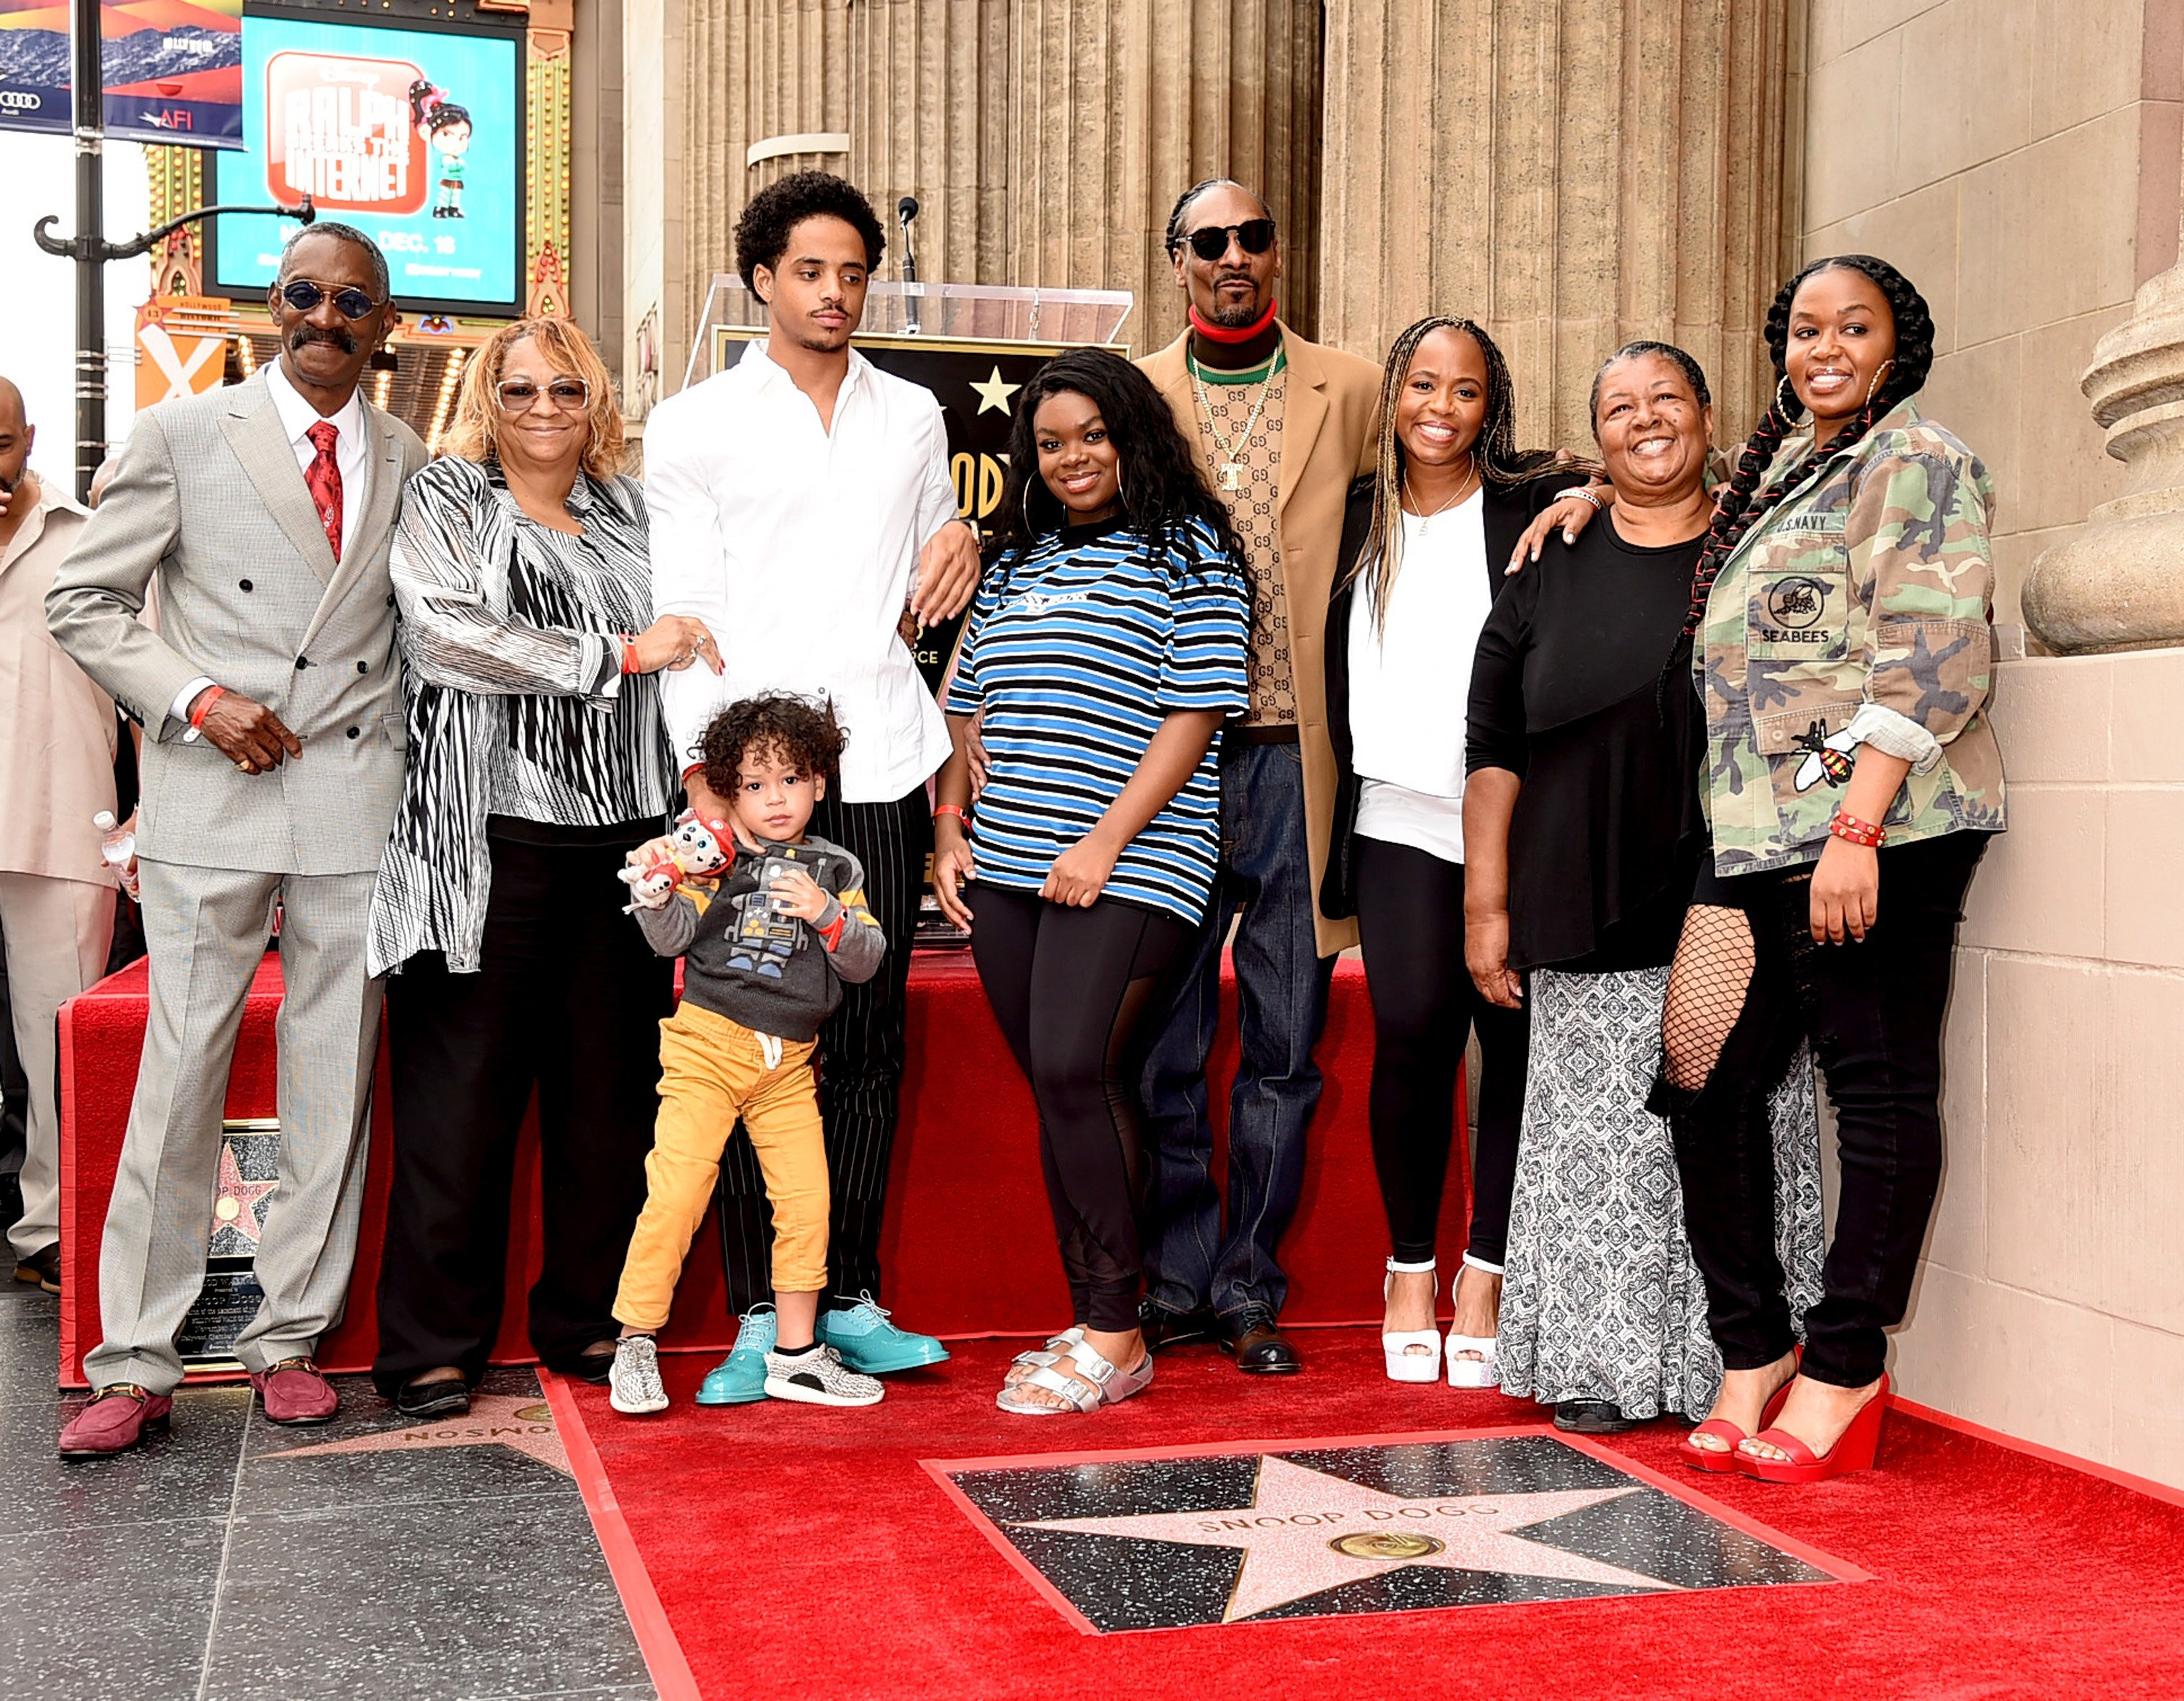 Snoop Dogg, with his family, receiving a star on The Hollywood Walk of Fame on November 19, 2018 in Los Angeles, California.   Photo: Getty Images